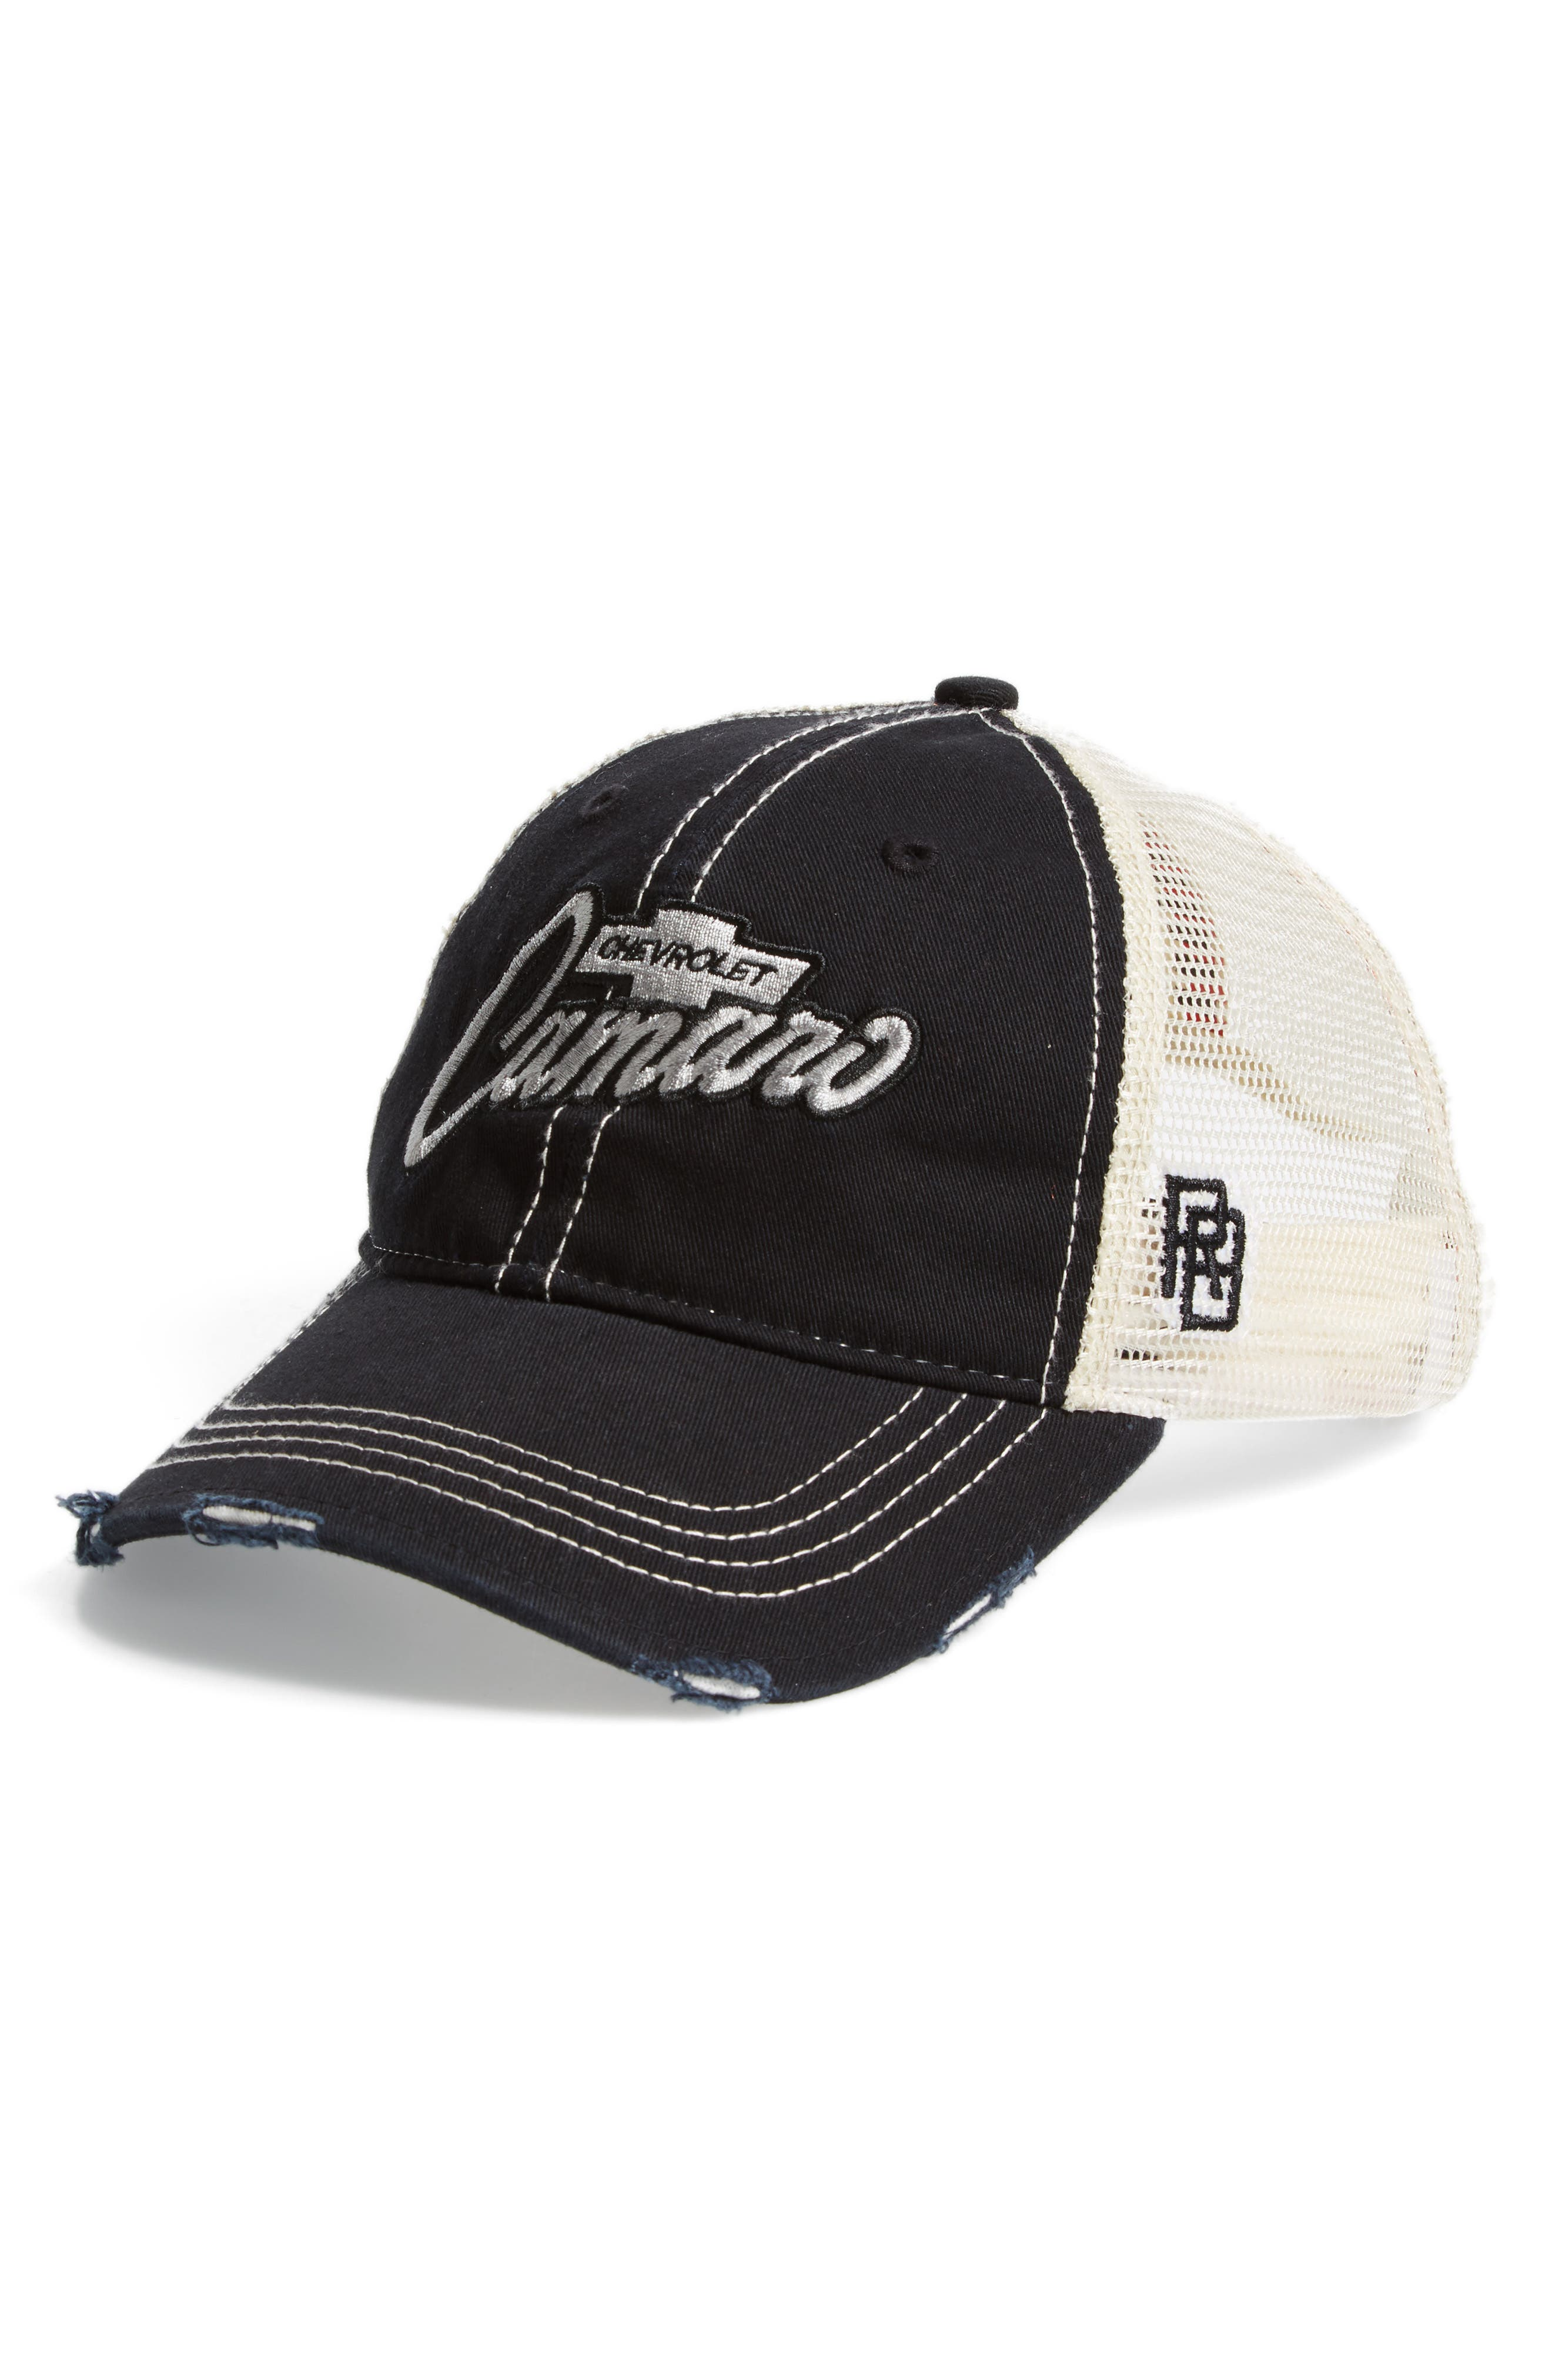 Main Image - Original Retro Brand Camaro Trucker Hat